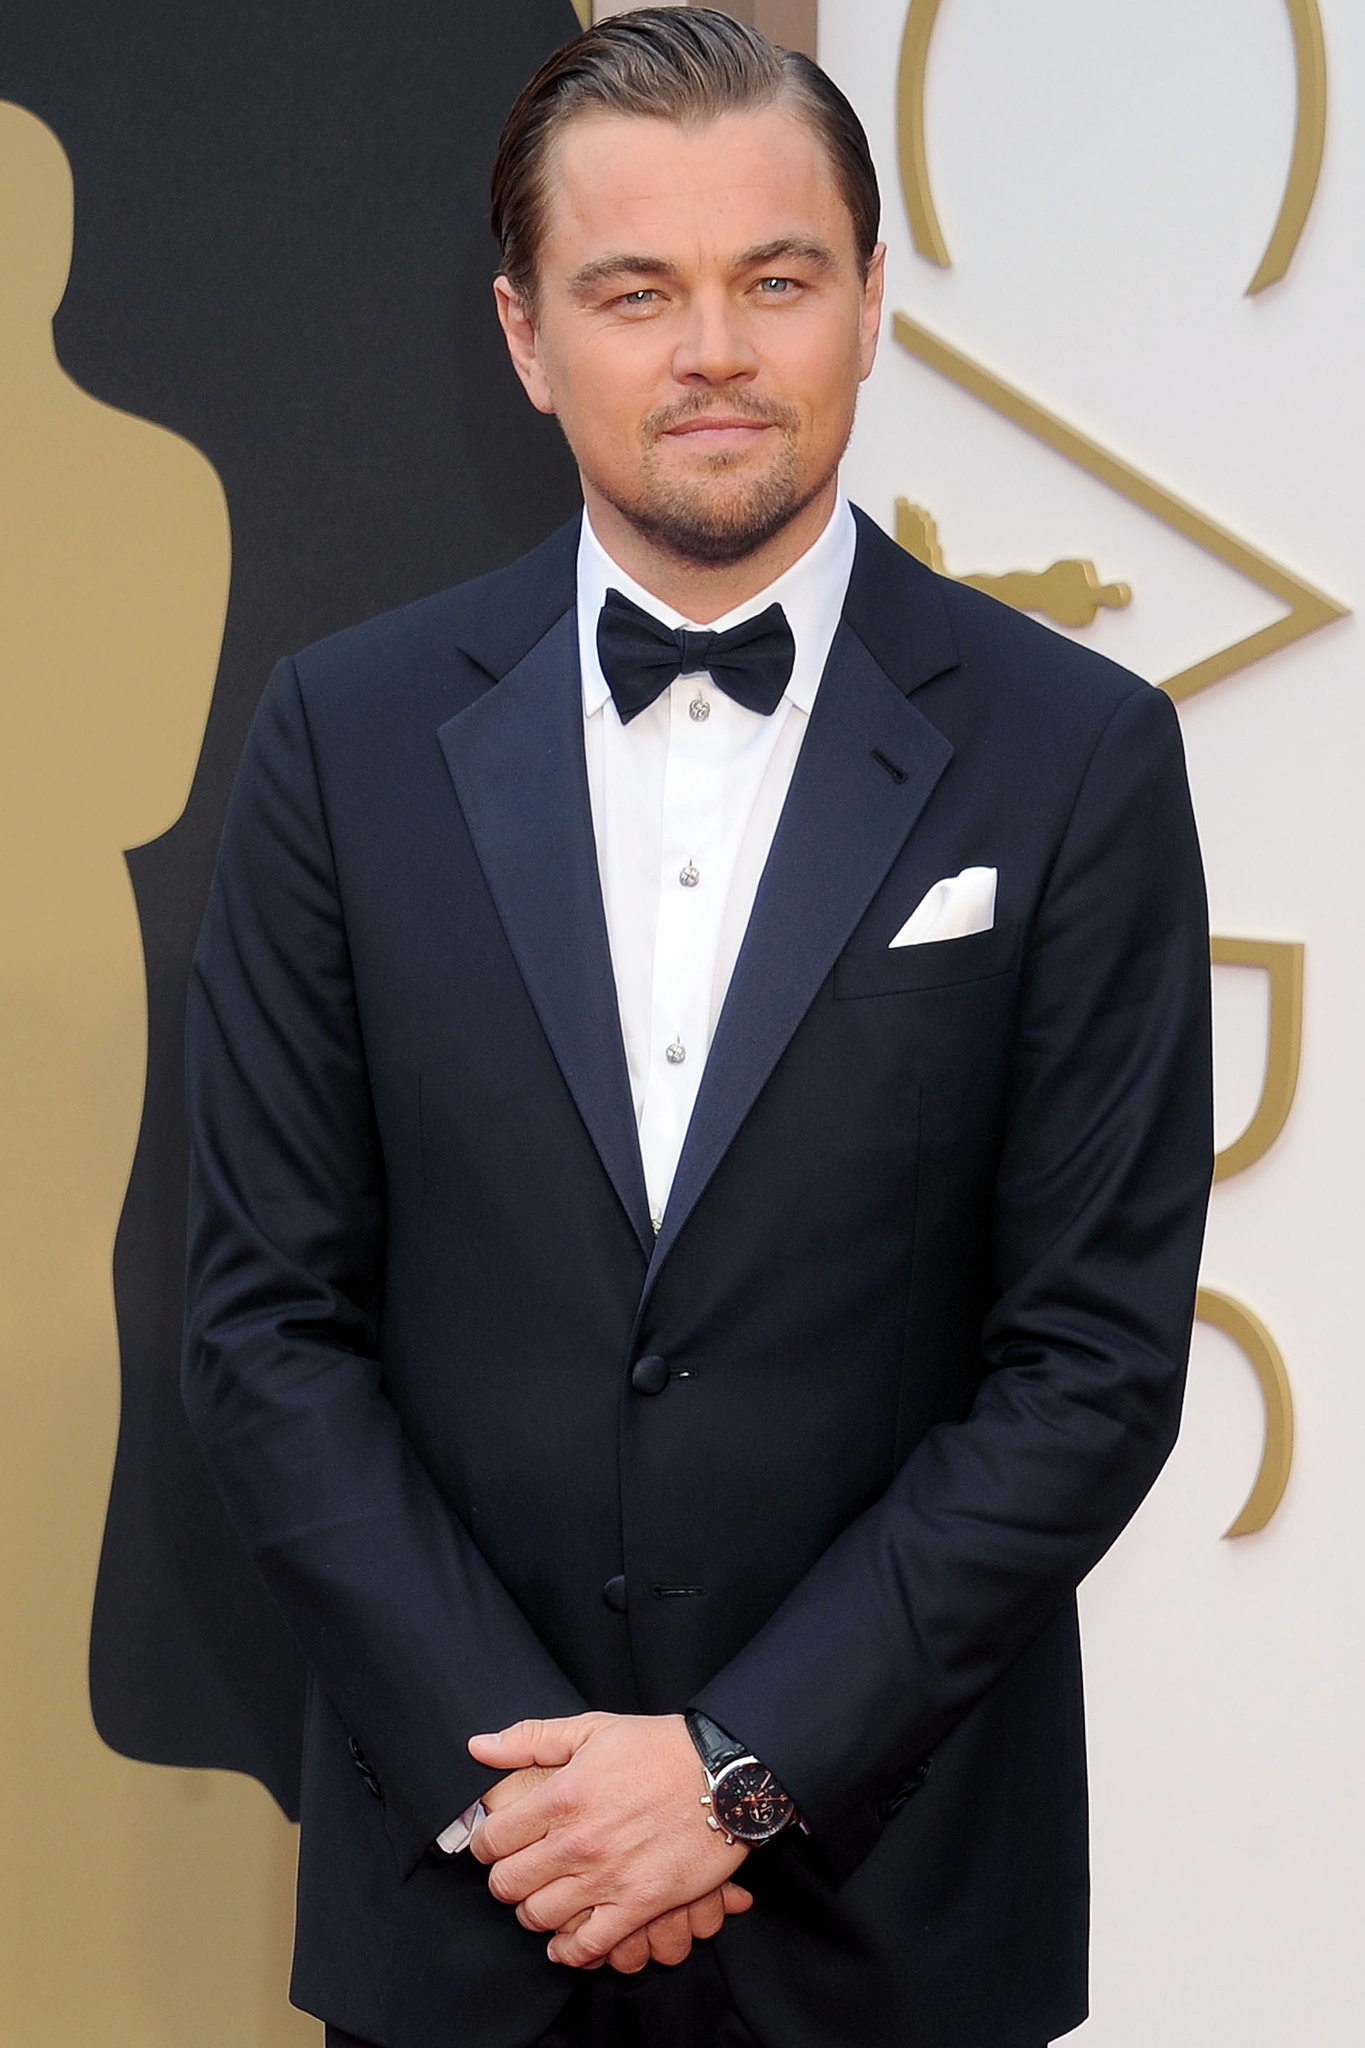 Leonardo DiCaprio may play Steve Jobs in a new biopic directed by Danny Boyle.